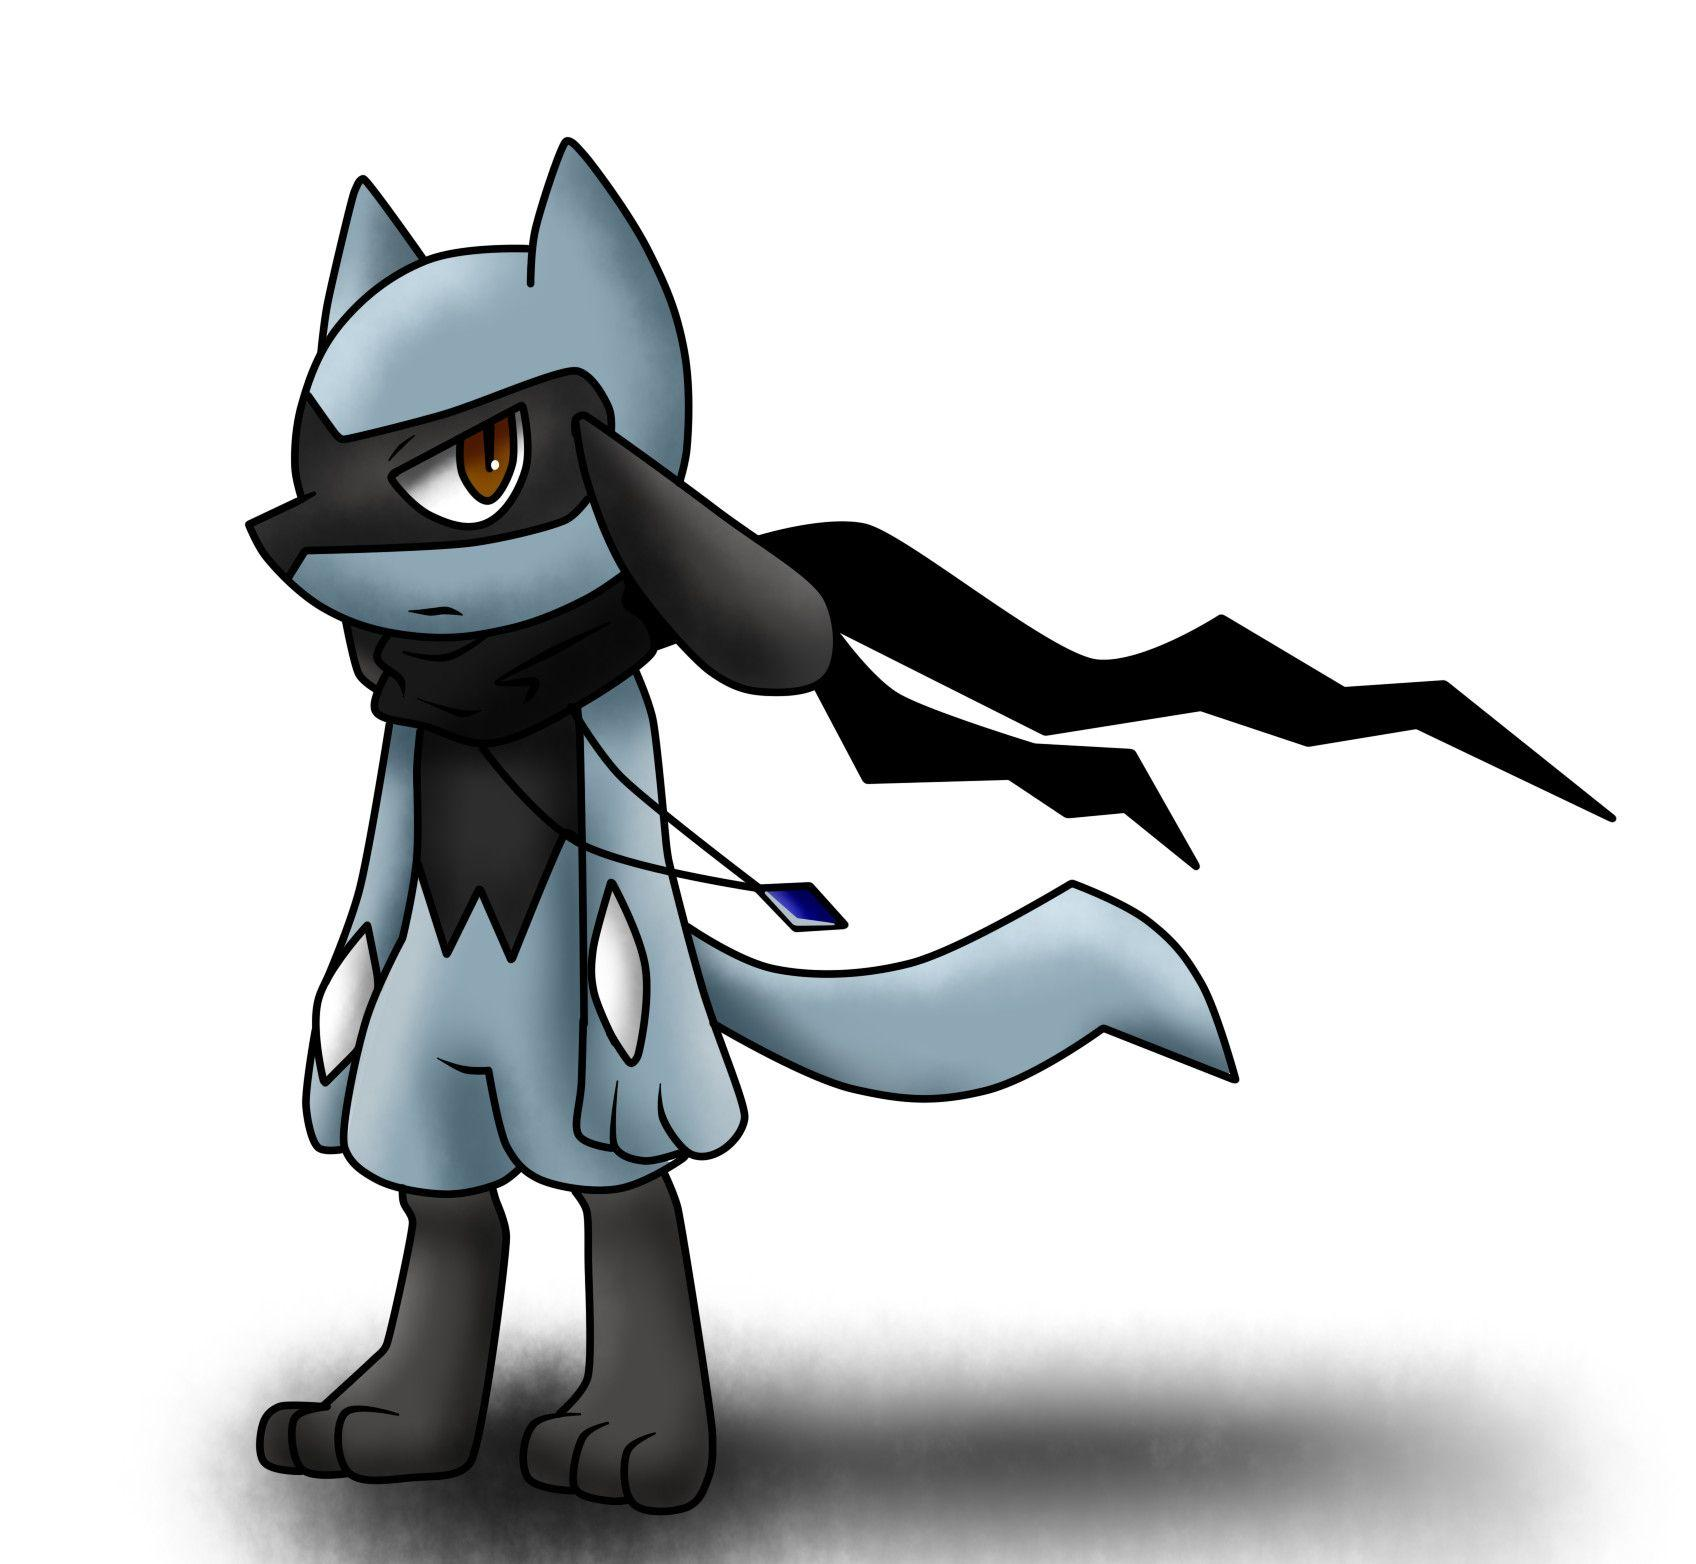 Name : Zero Species : Riolu Gender : male Level : 2 Sexuality ...